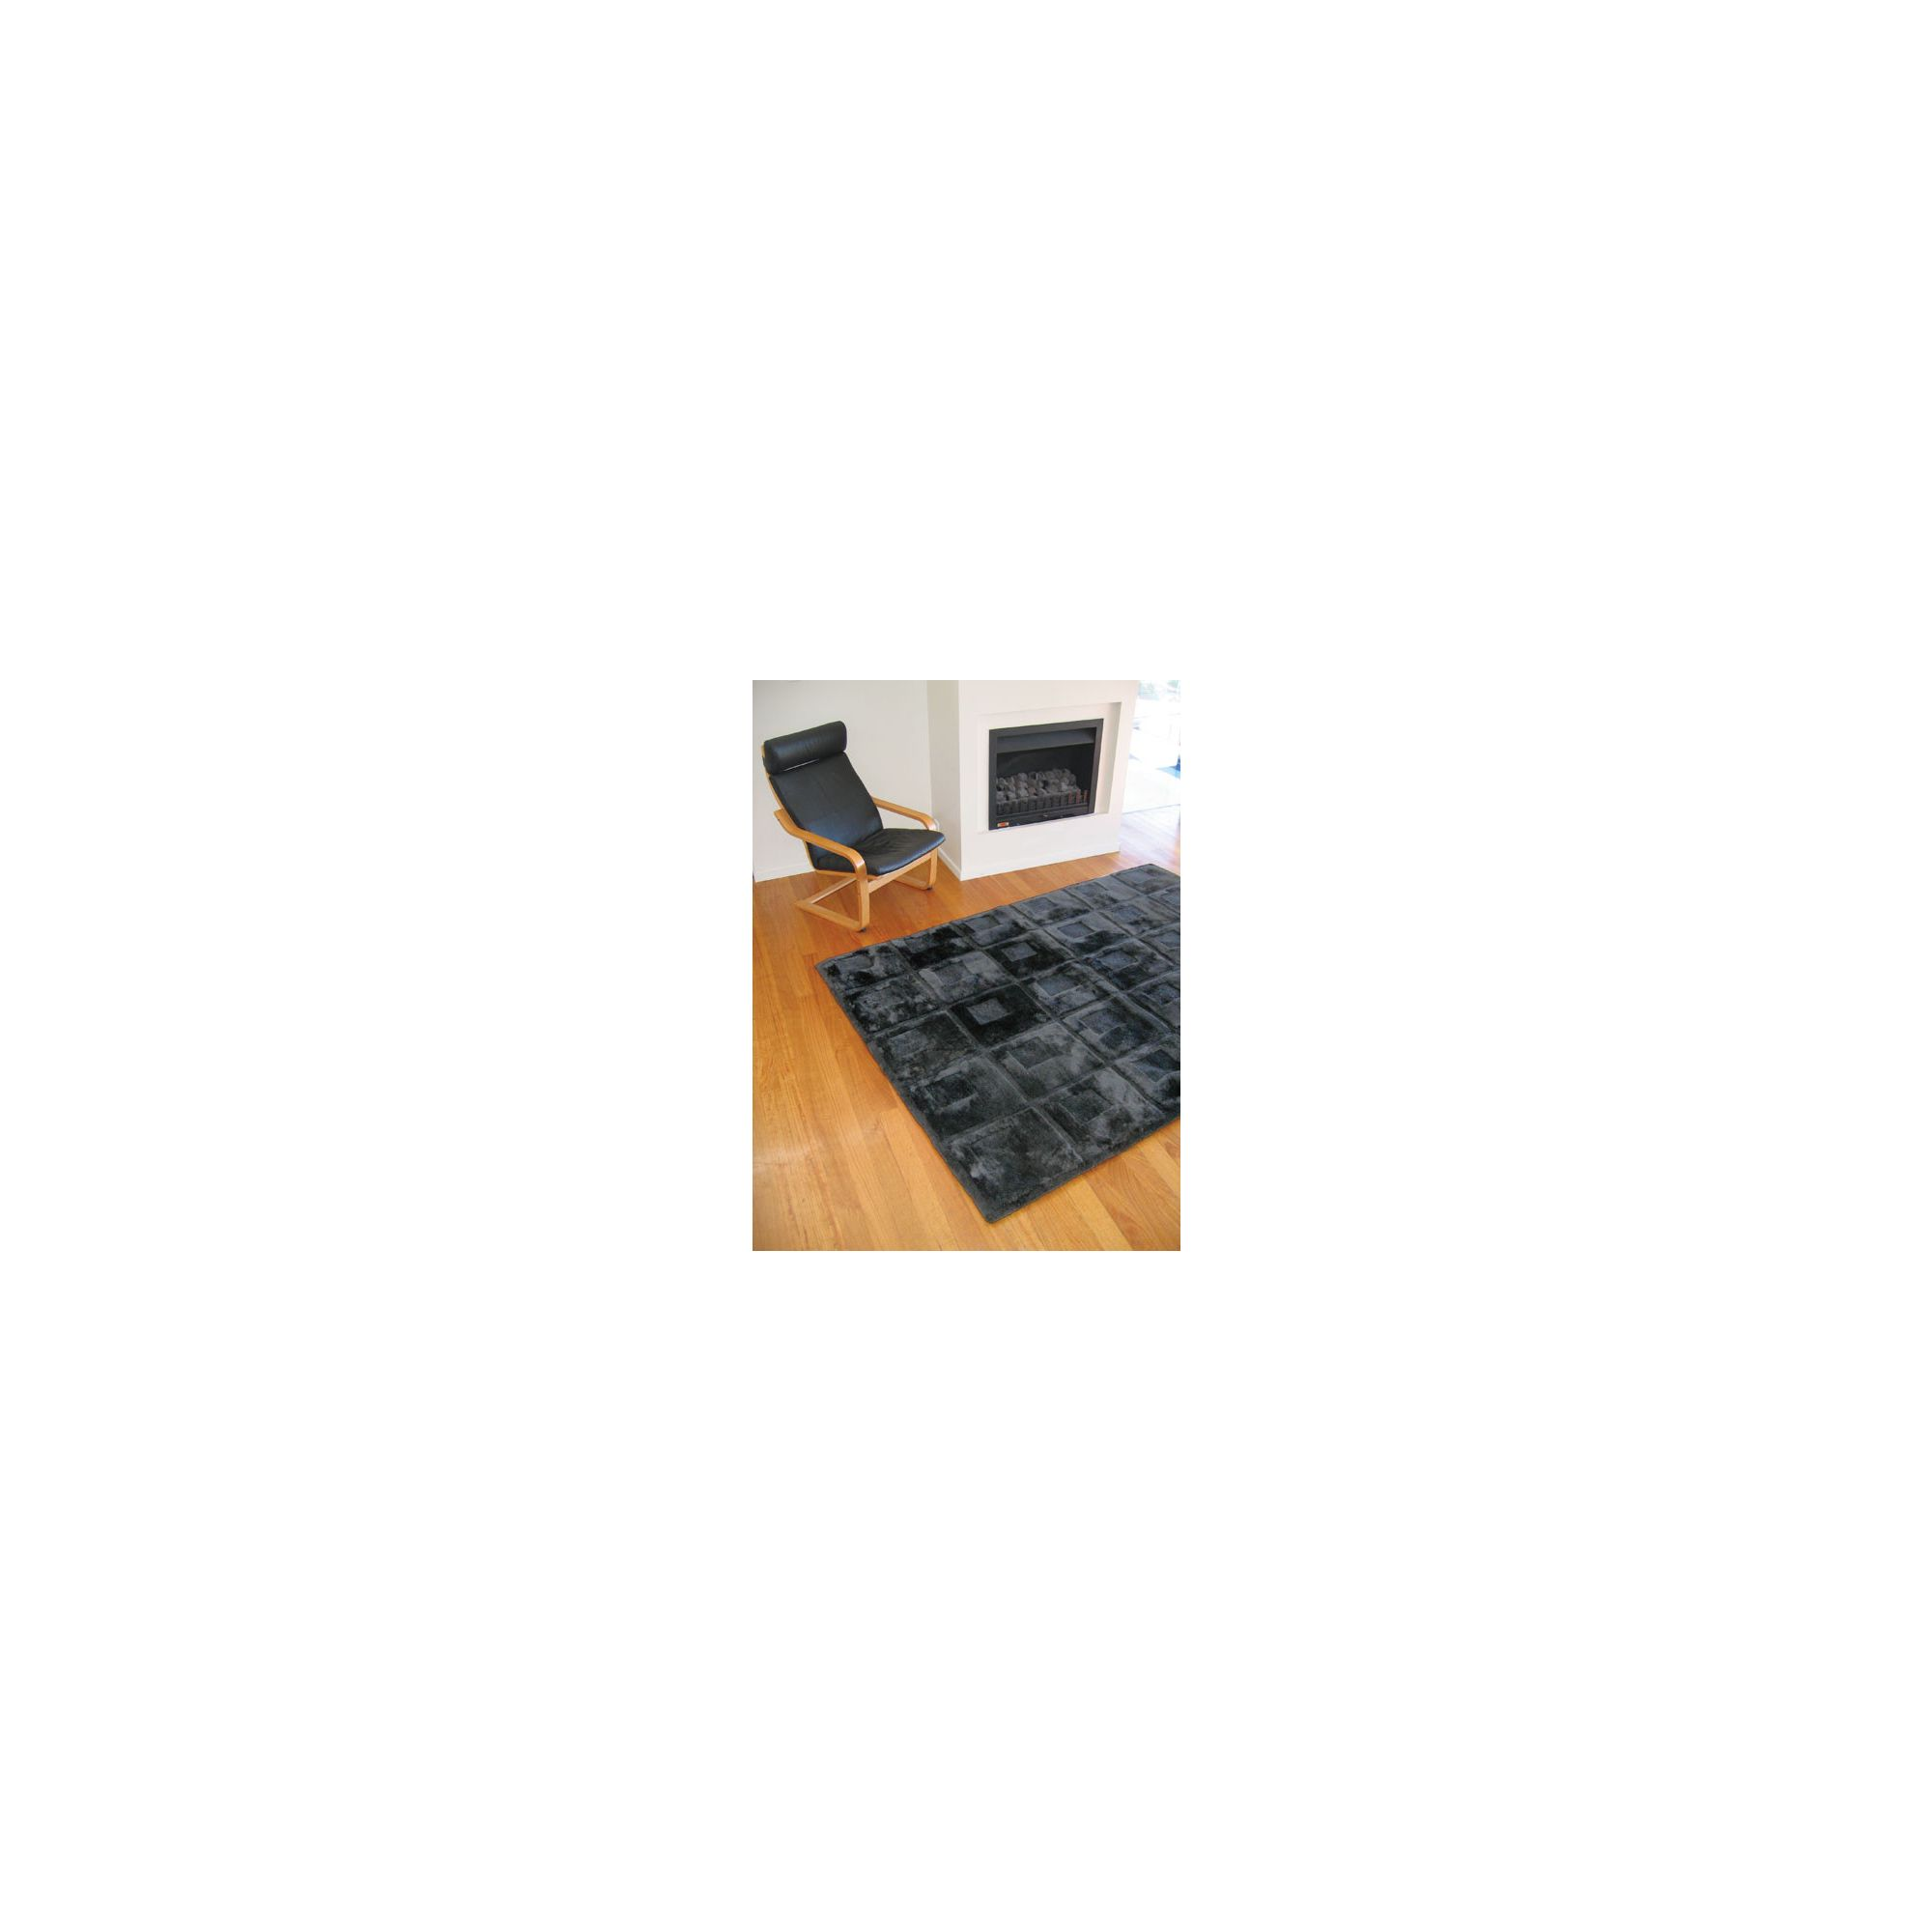 Bowron Sheepskin Shortwool Design Orbit Black Rug - 240cm H x 170cm W x 1cm D at Tesco Direct